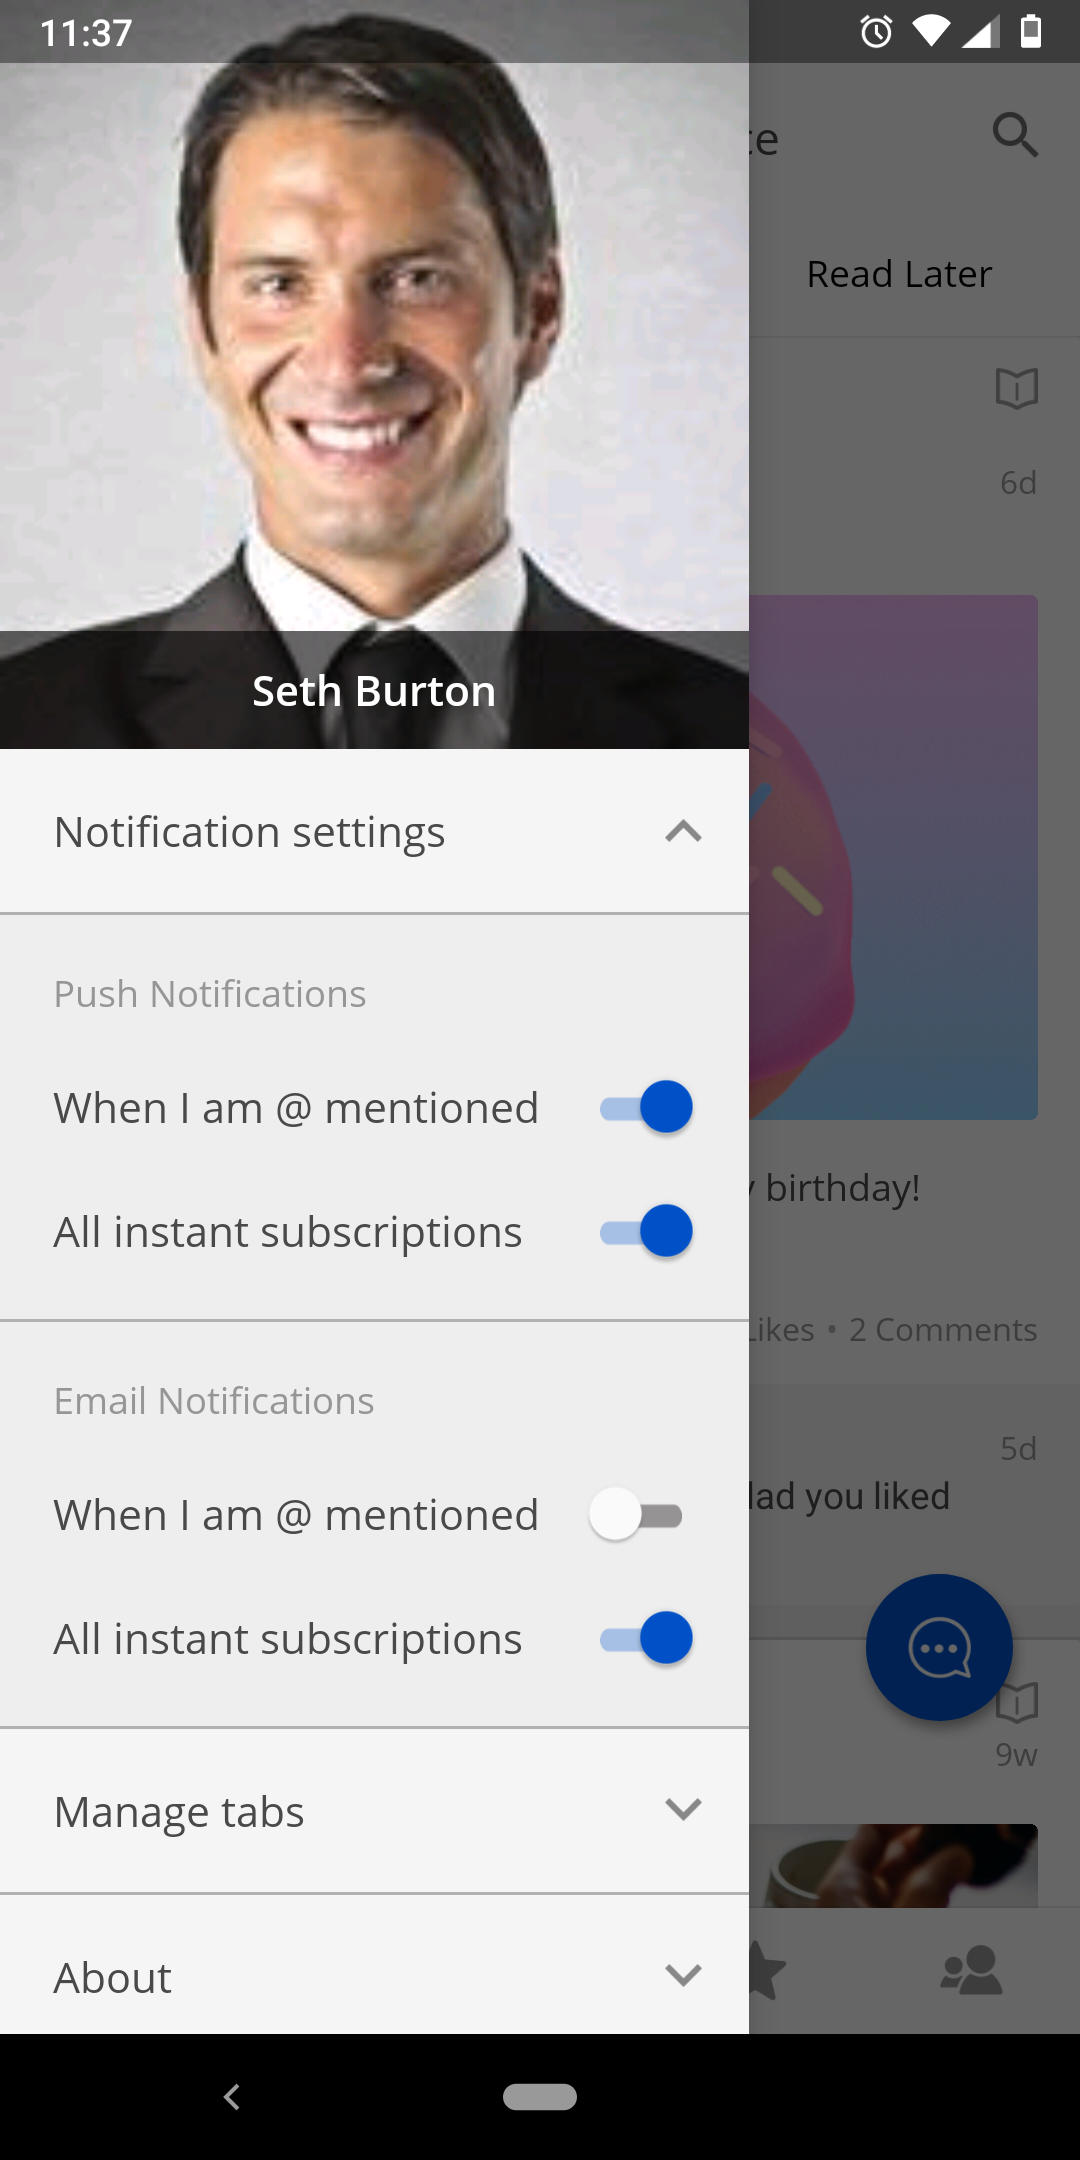 The Notification settings section.